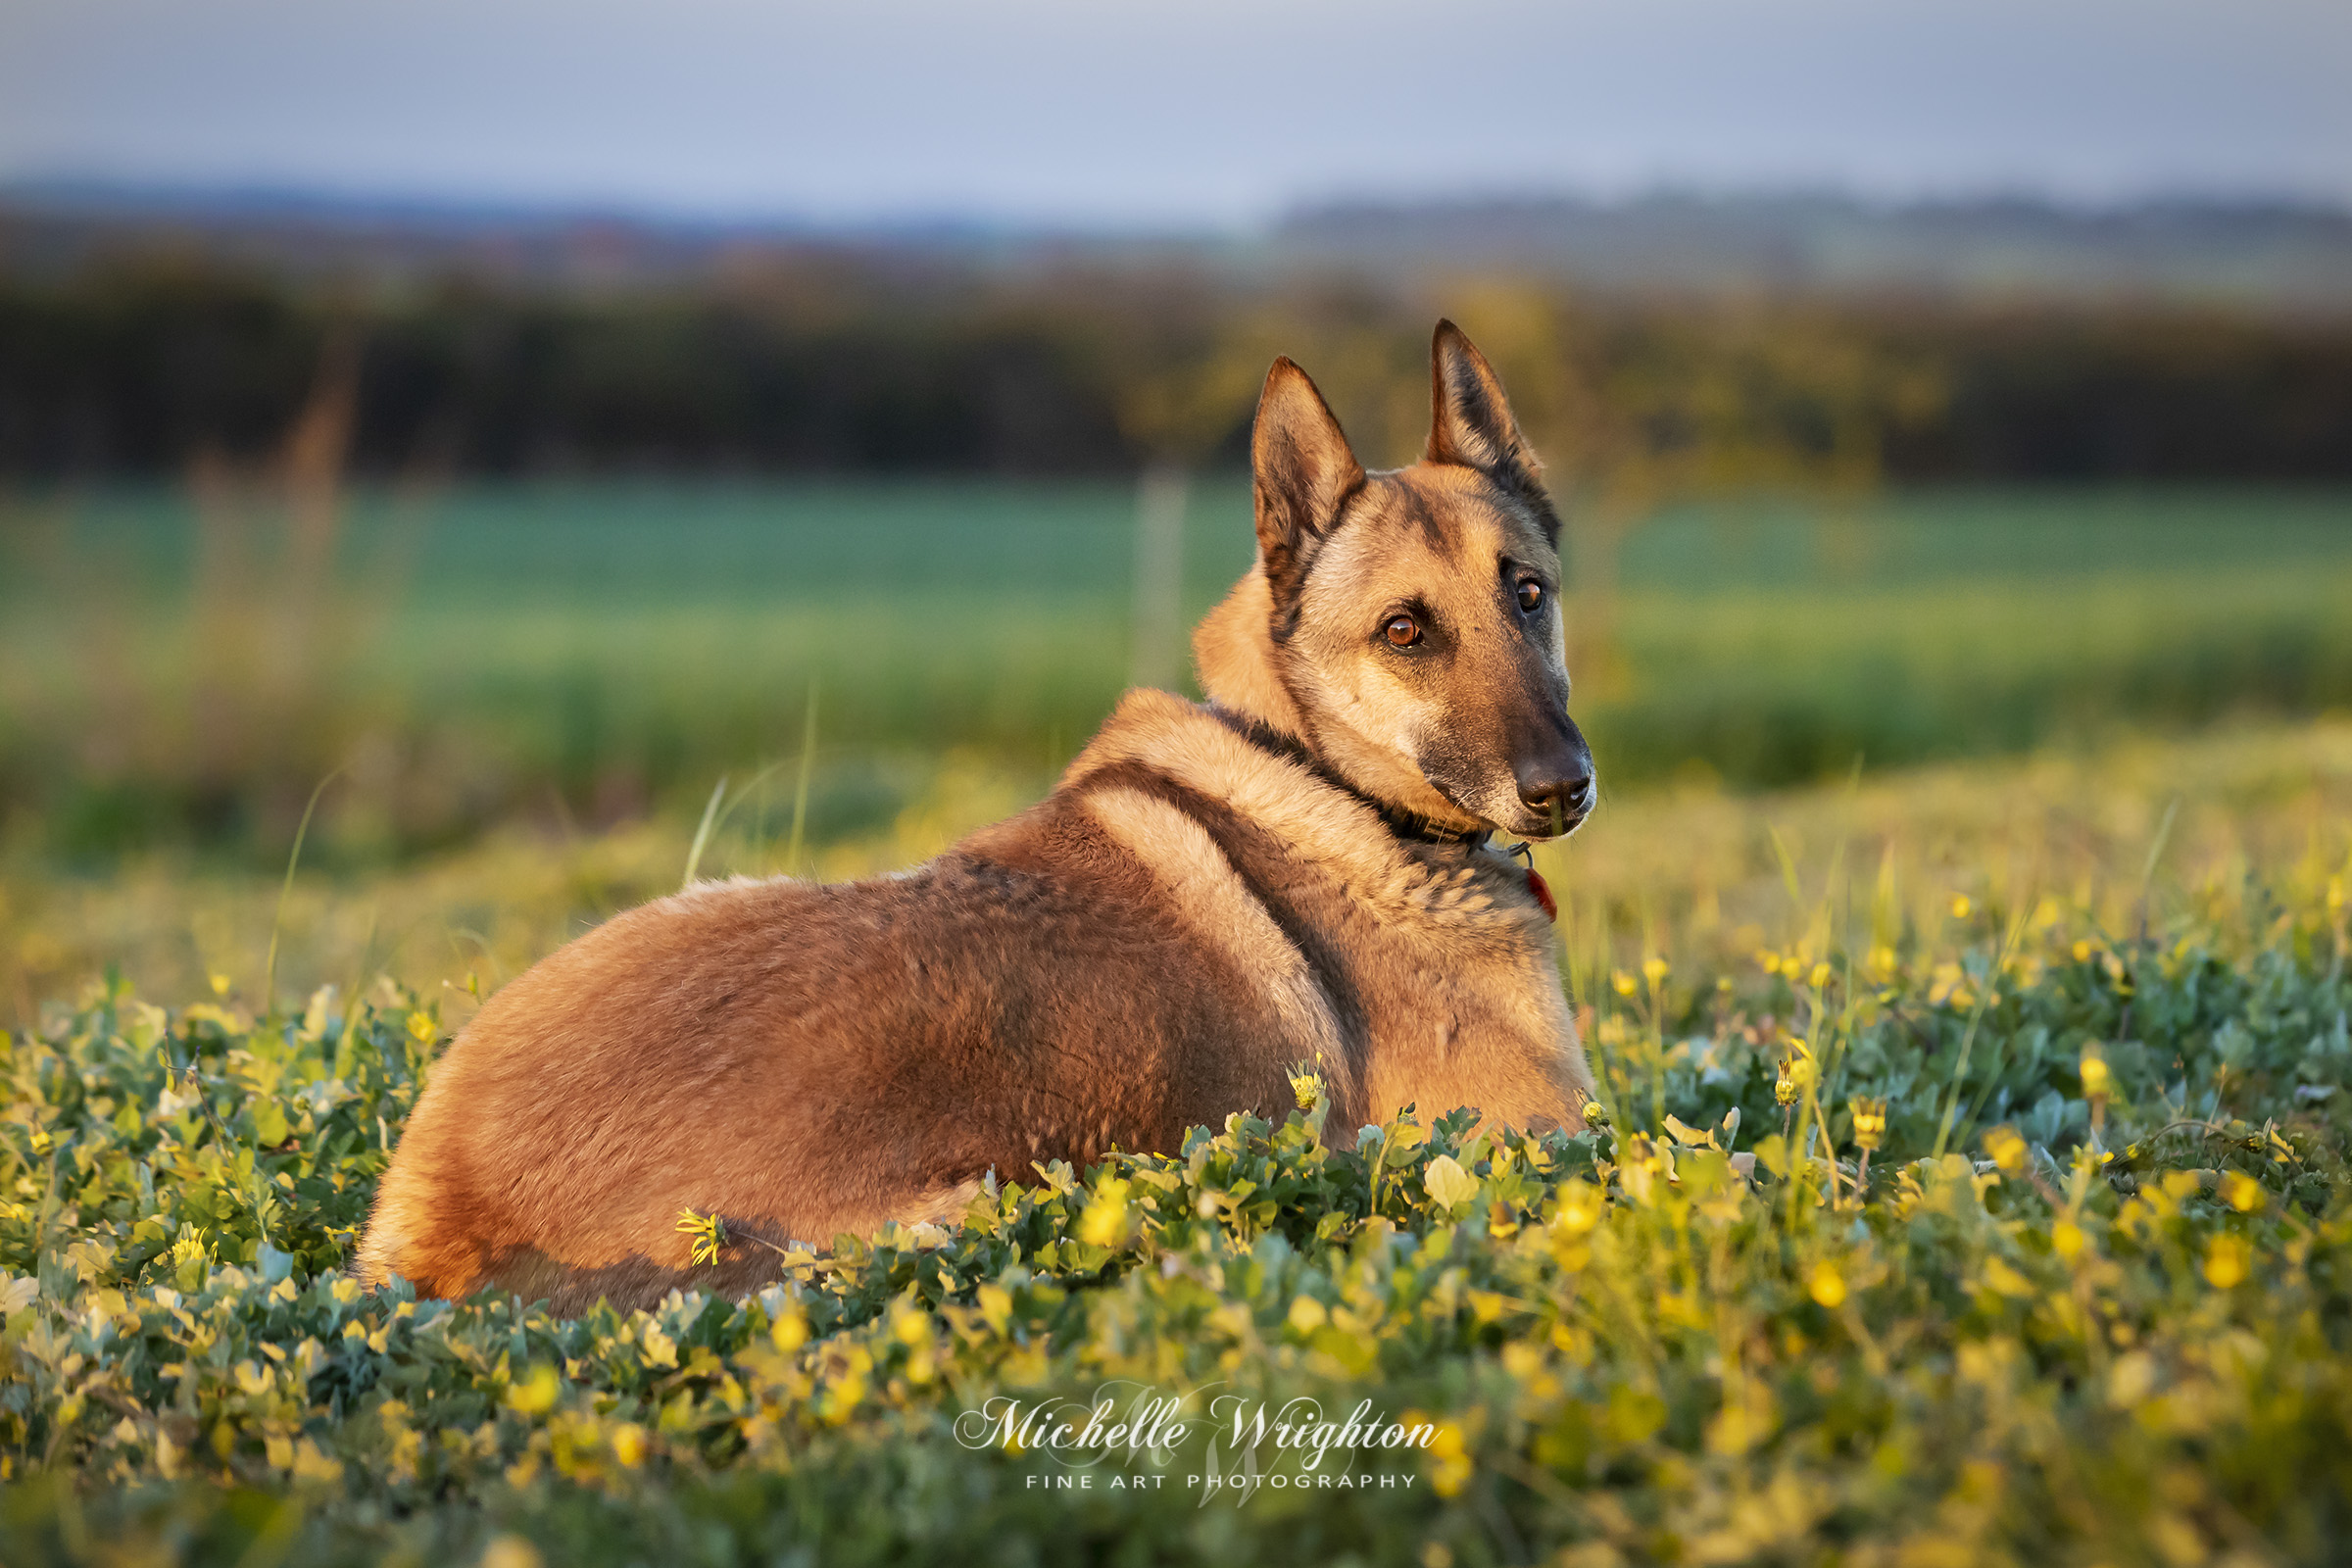 Dog Portrait Photography gallery image